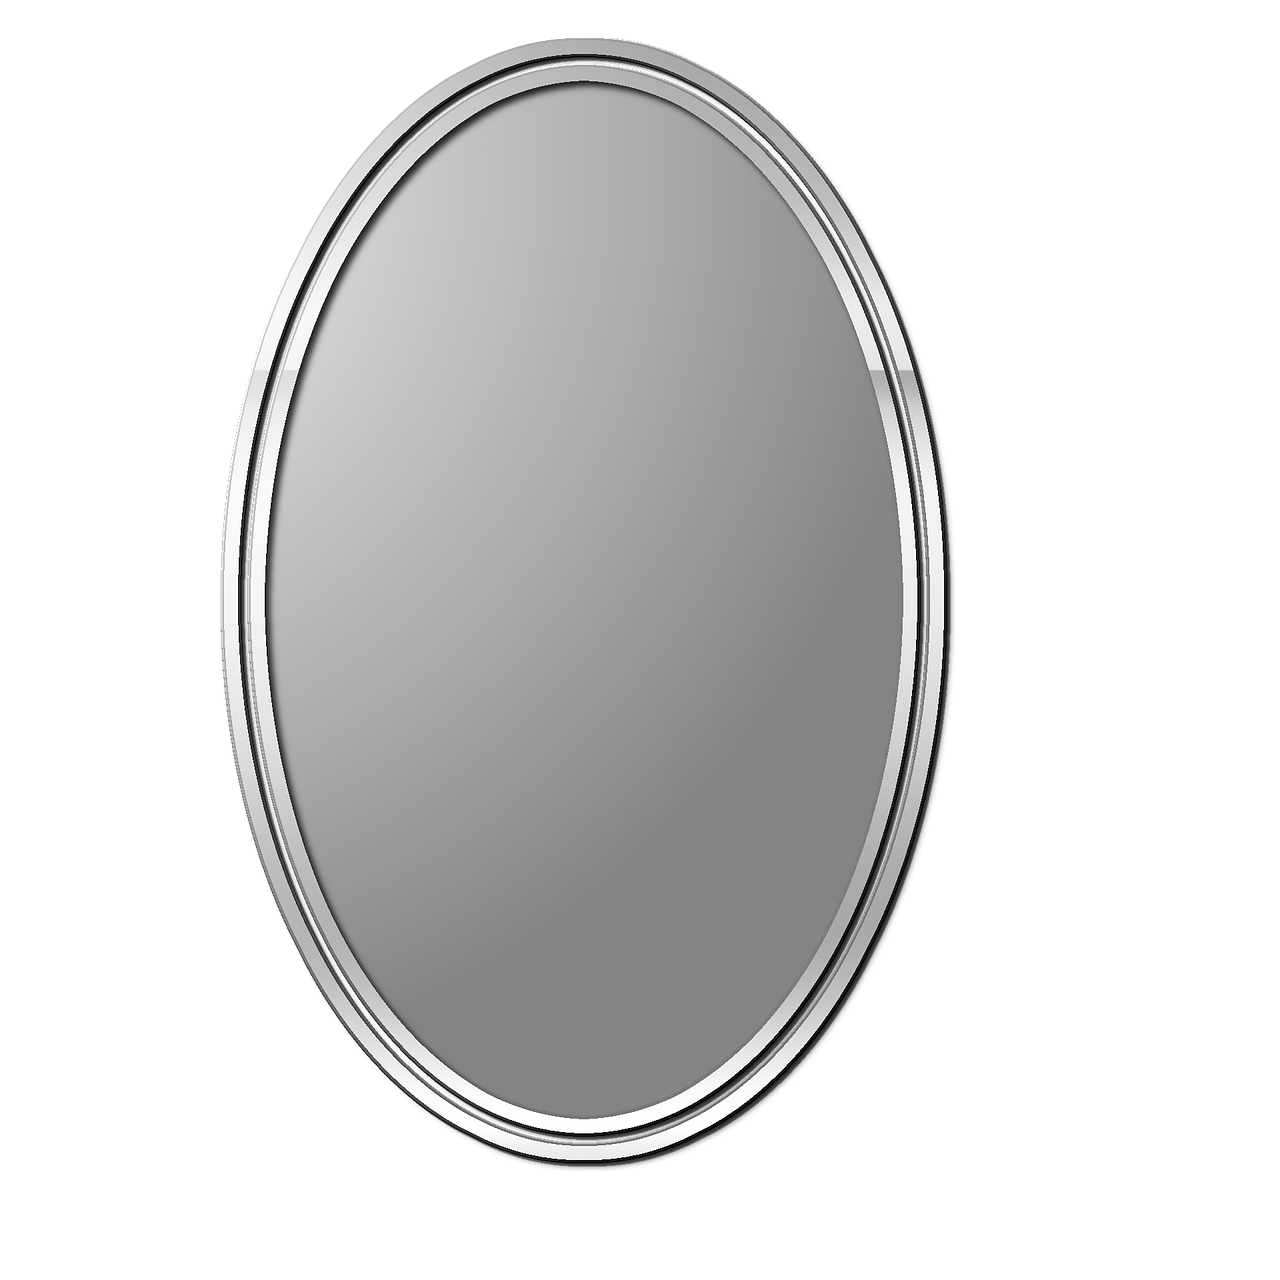 What Does Your Mirror Reflect?